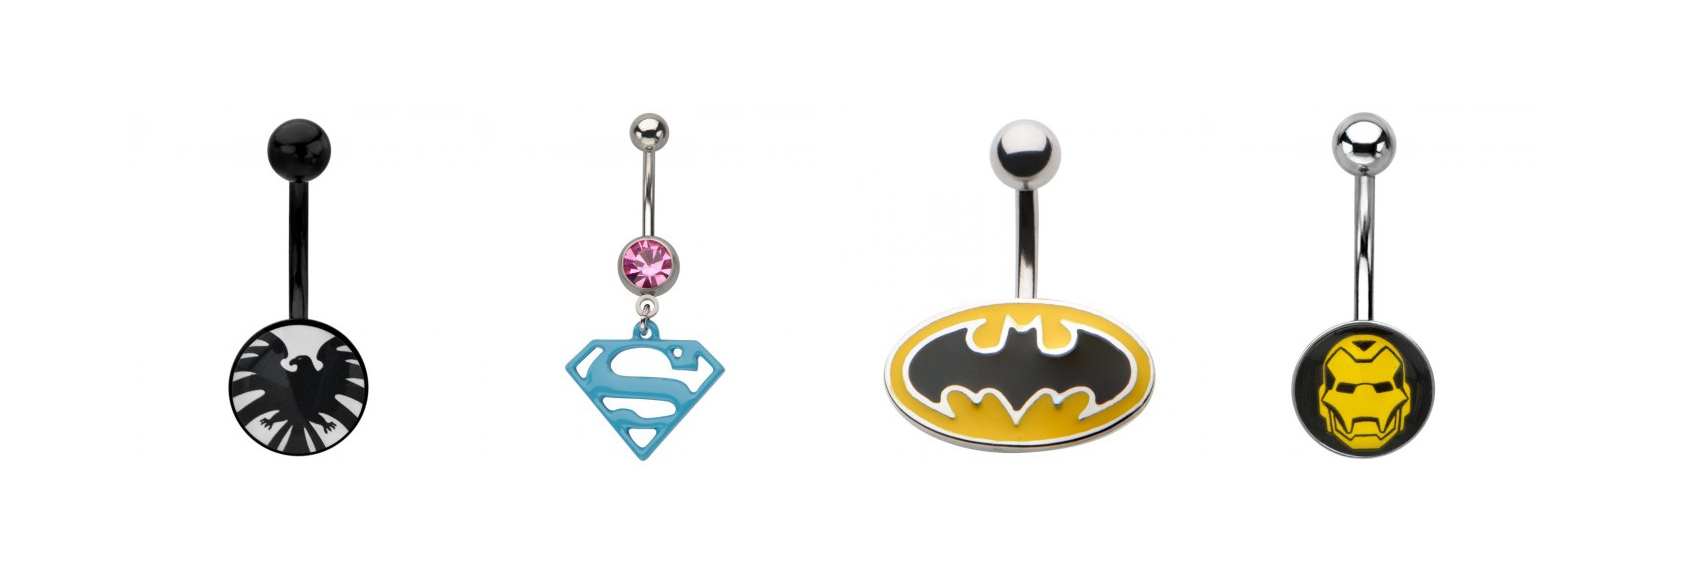 piercing de nombril de la marque marvel et comics disponible sur tarwa tendance été 2016 piercing nombril iron man batman et superman